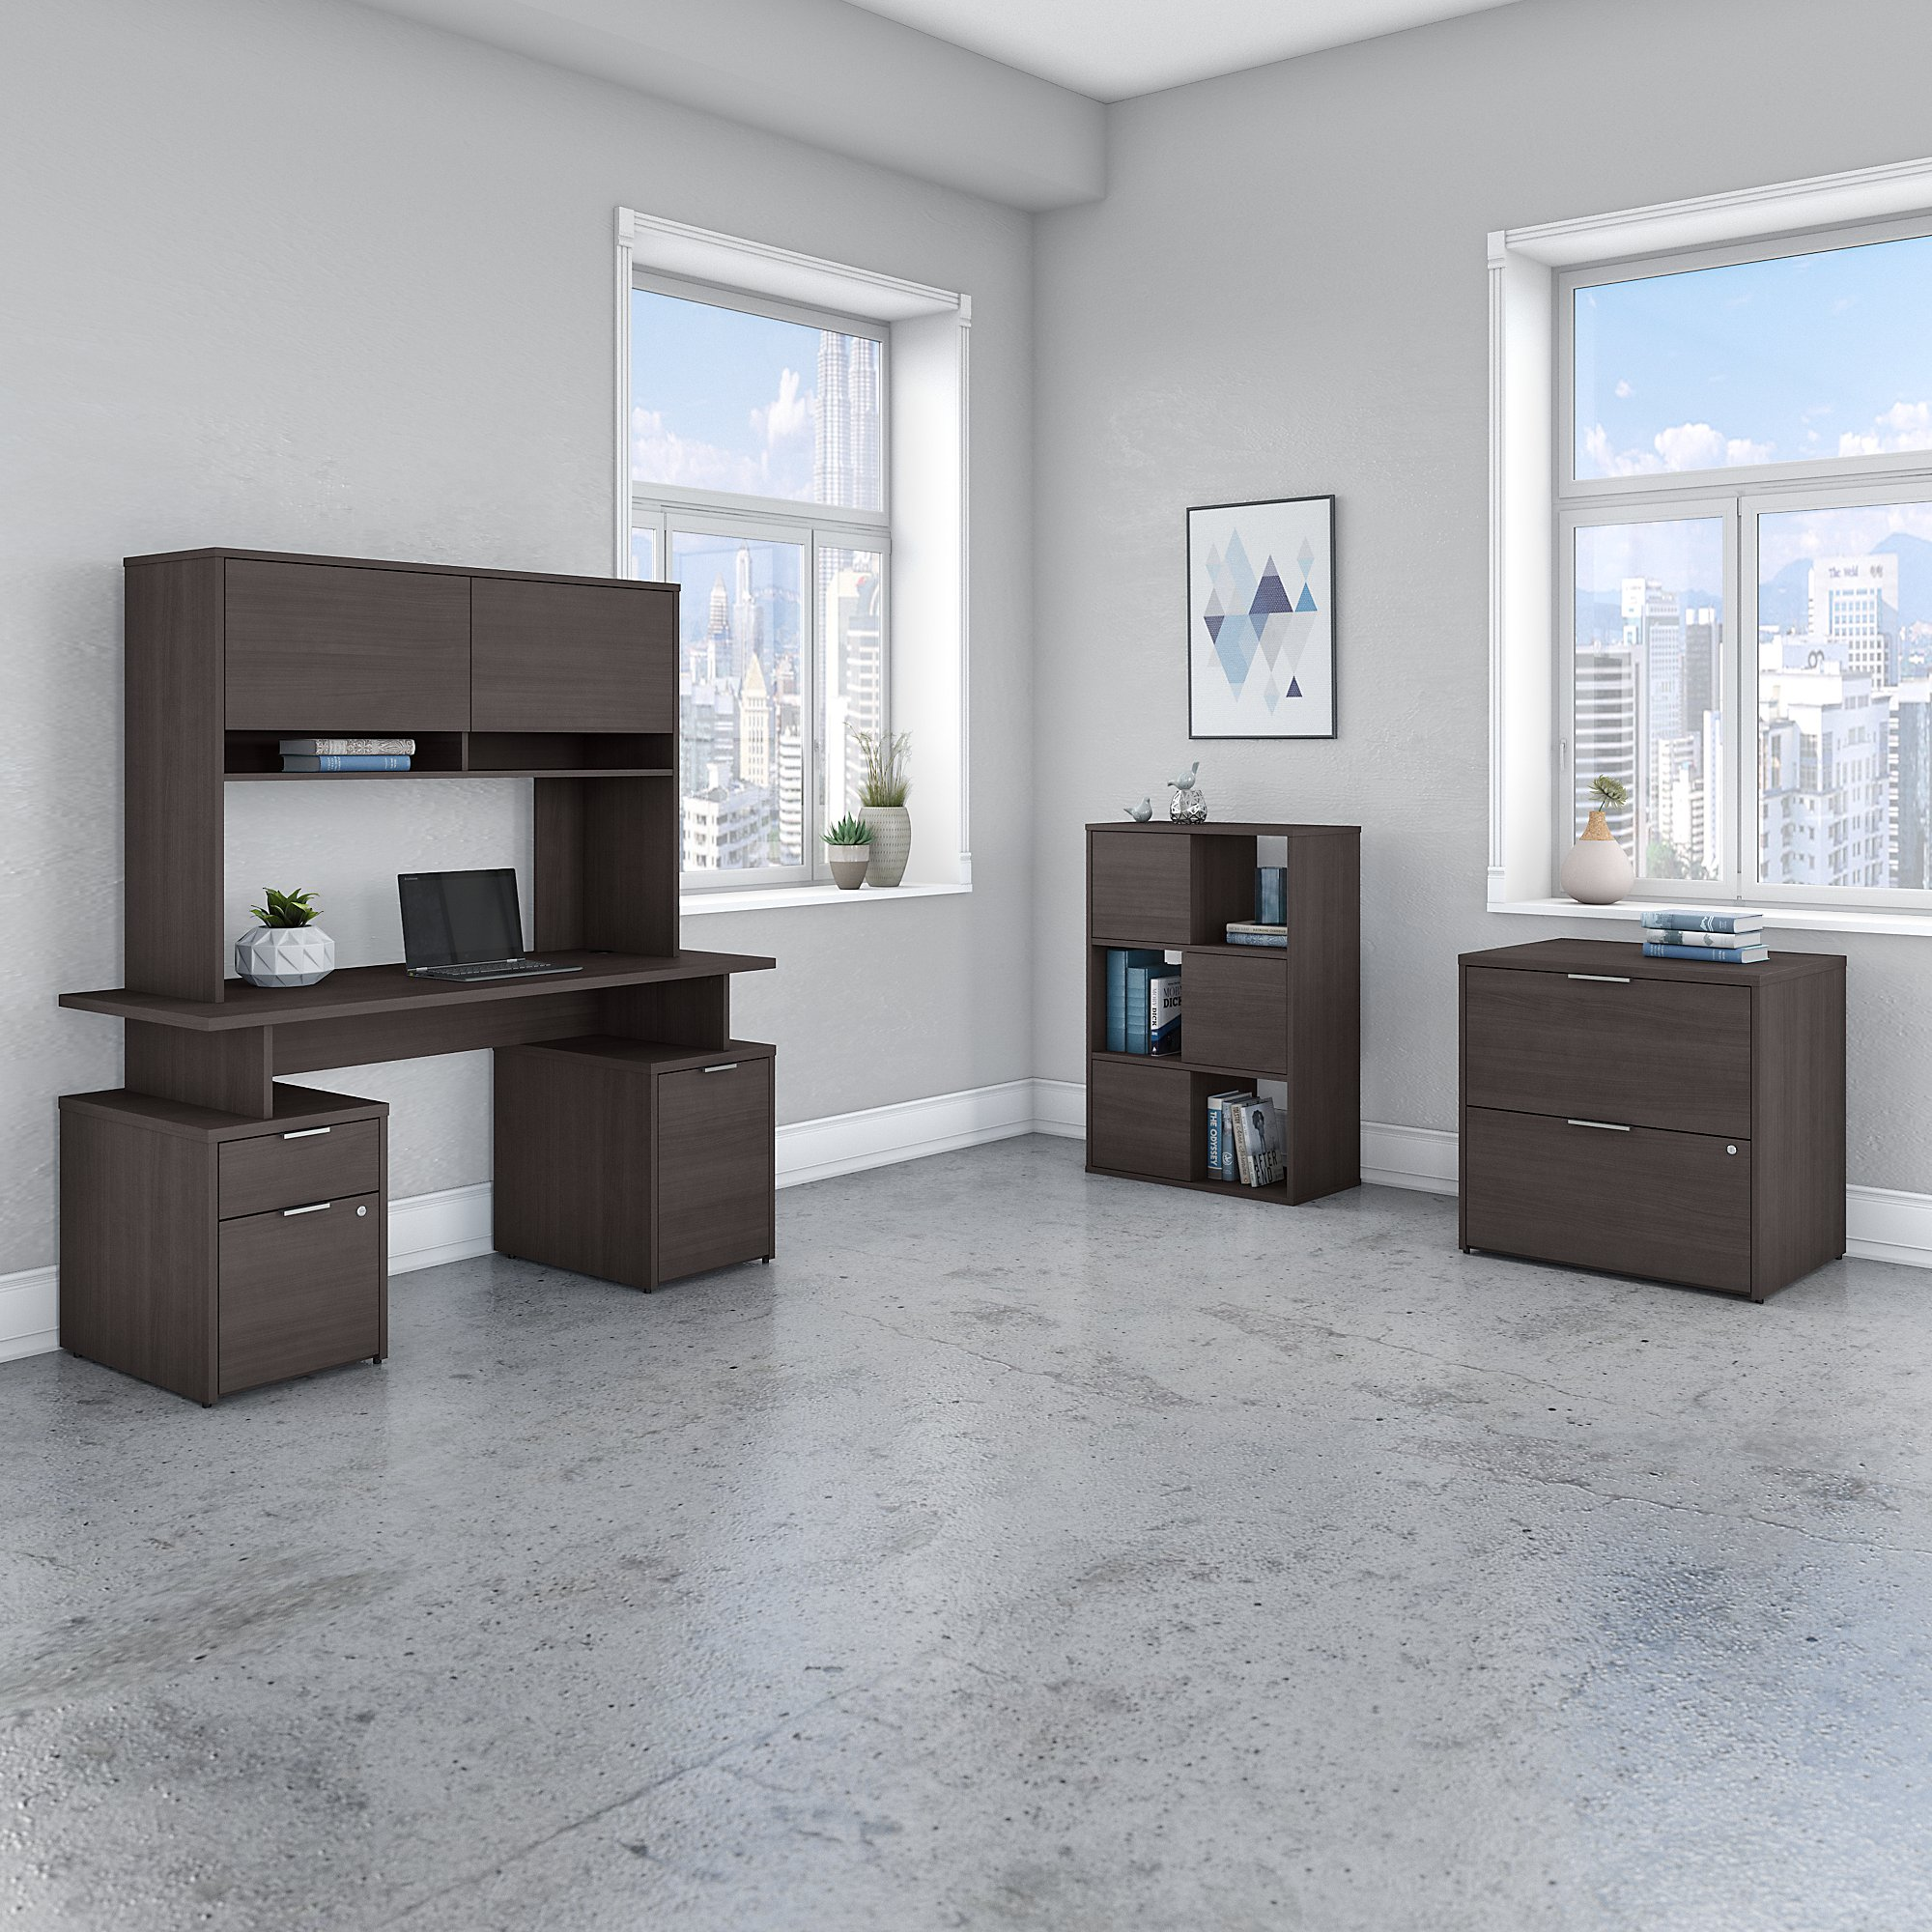 Bush Business Furniture Jamestown 60W Desk with Hutch, File Cabinets and 6 Cube Organizer